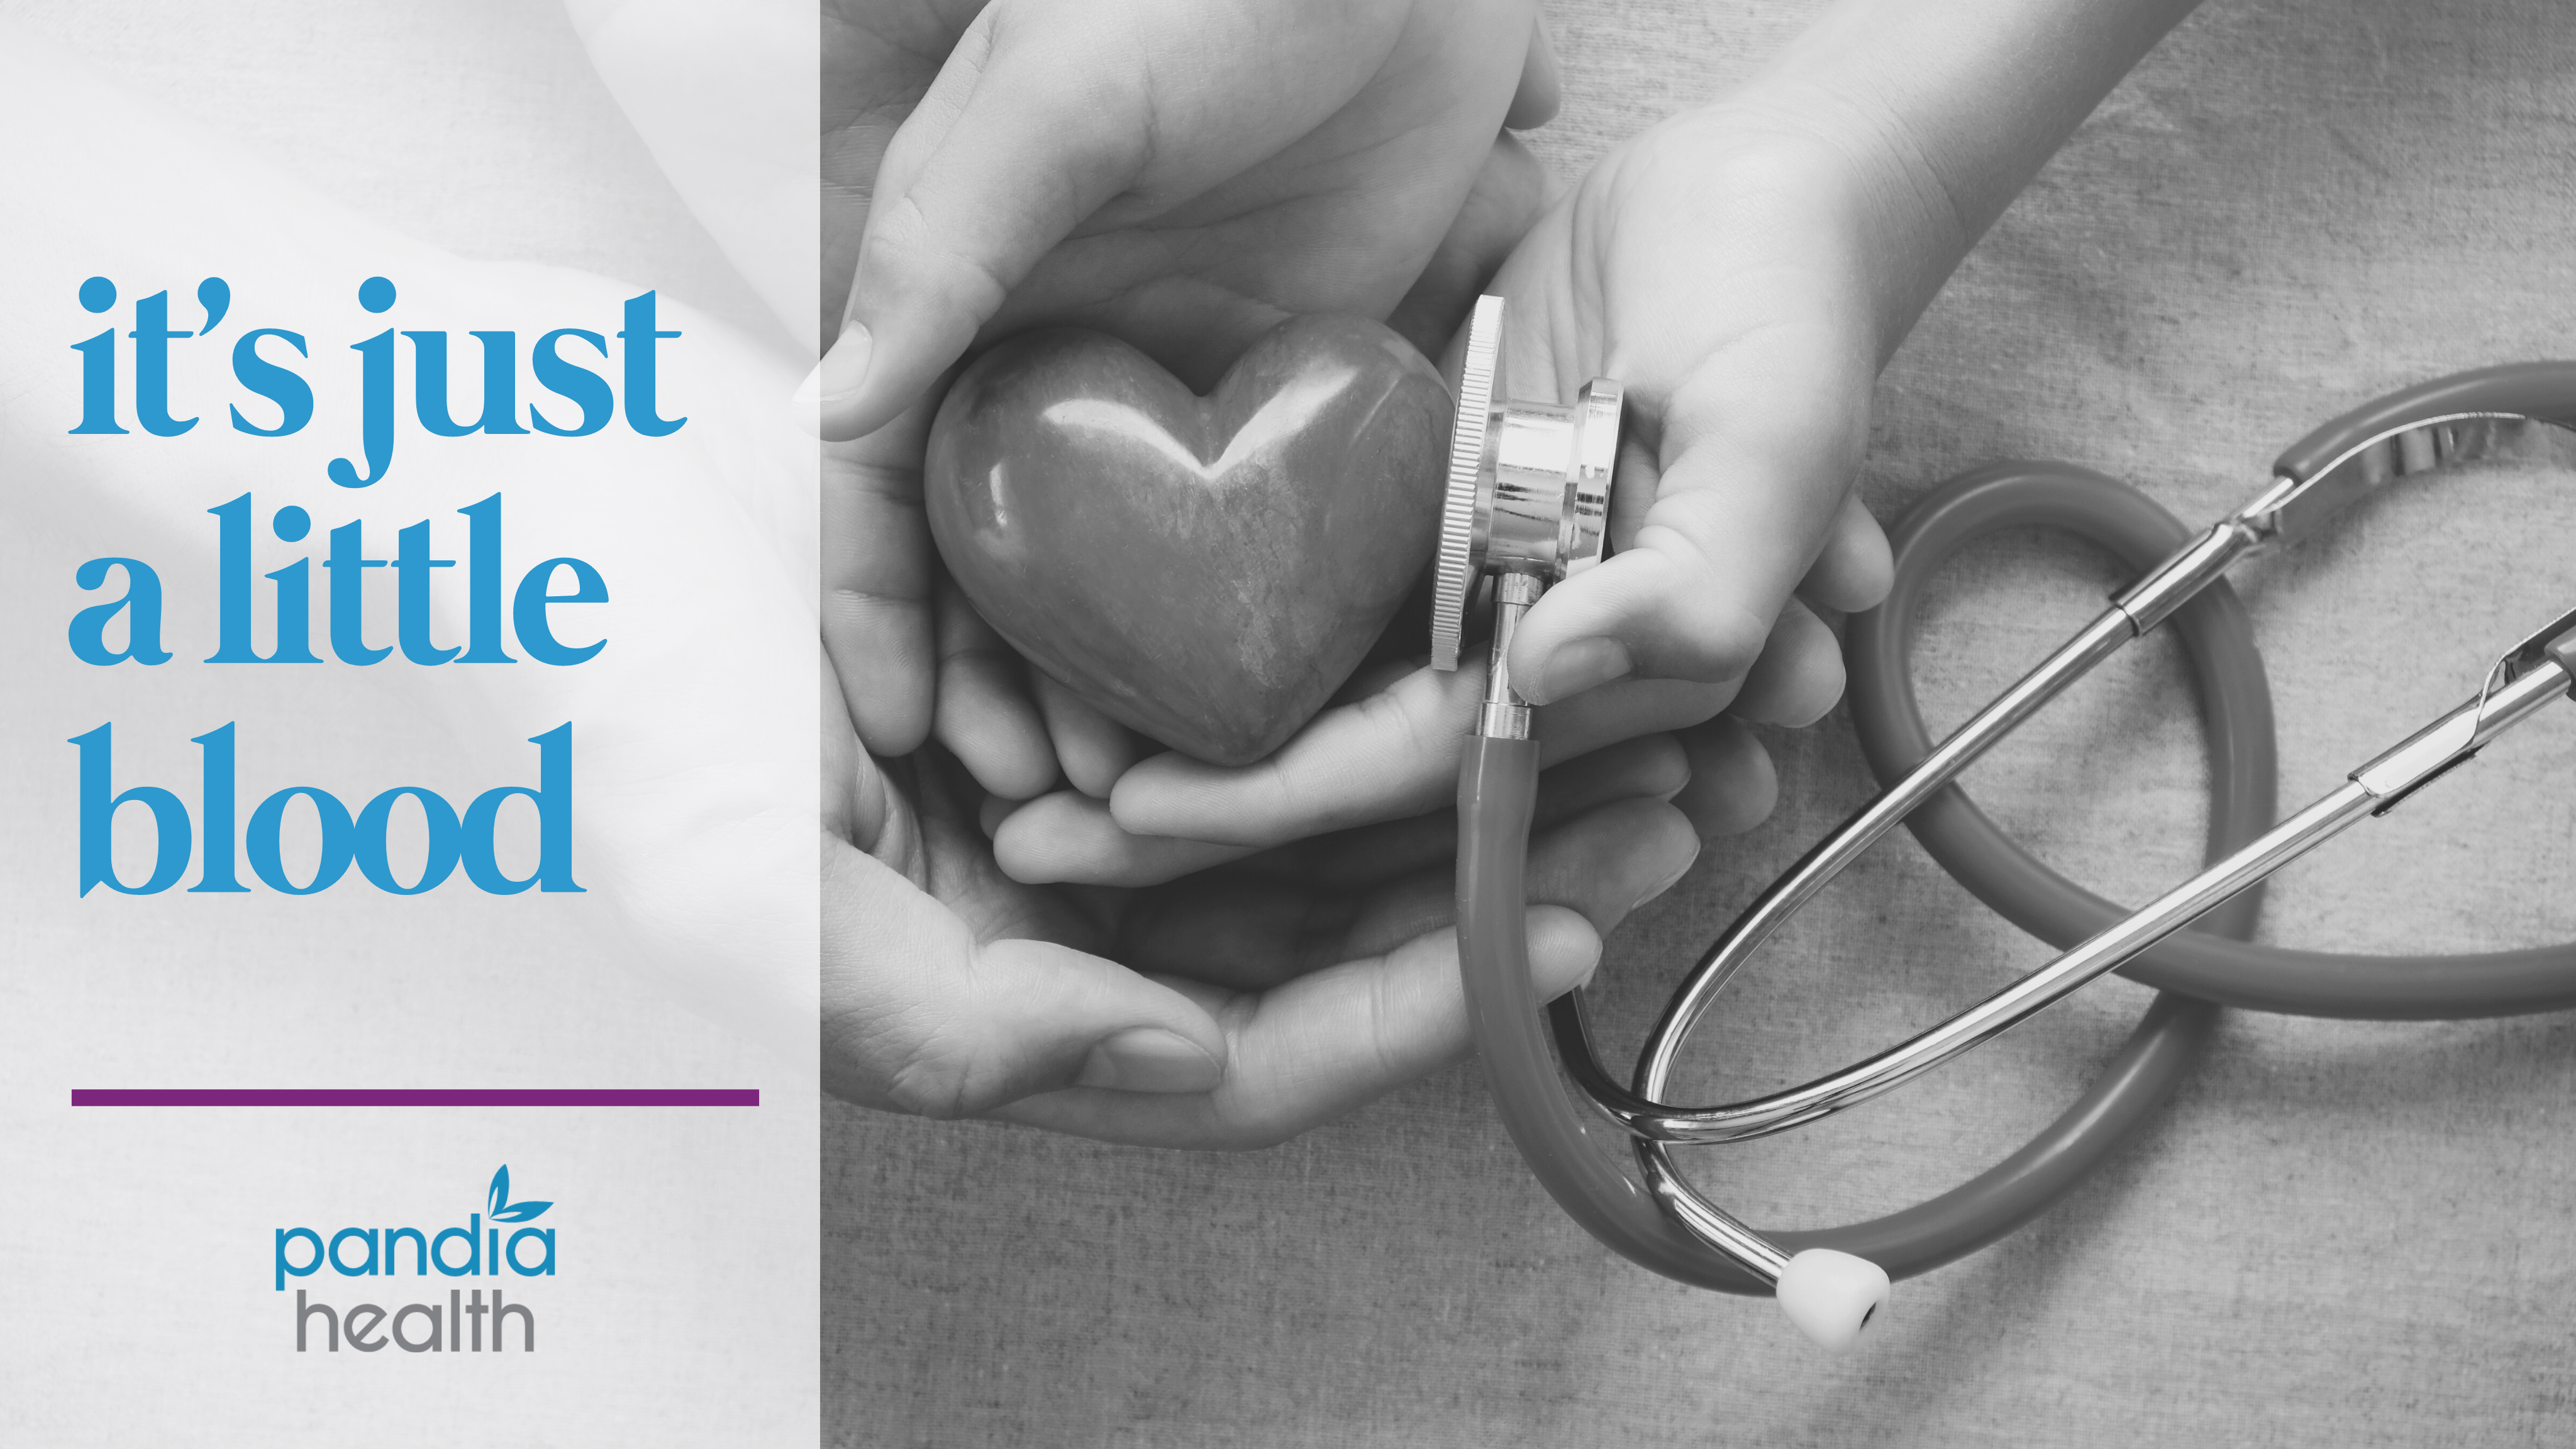 blog header image. parent and child's hands holding a heart shaped rock with a stethoscope pressed up to it.